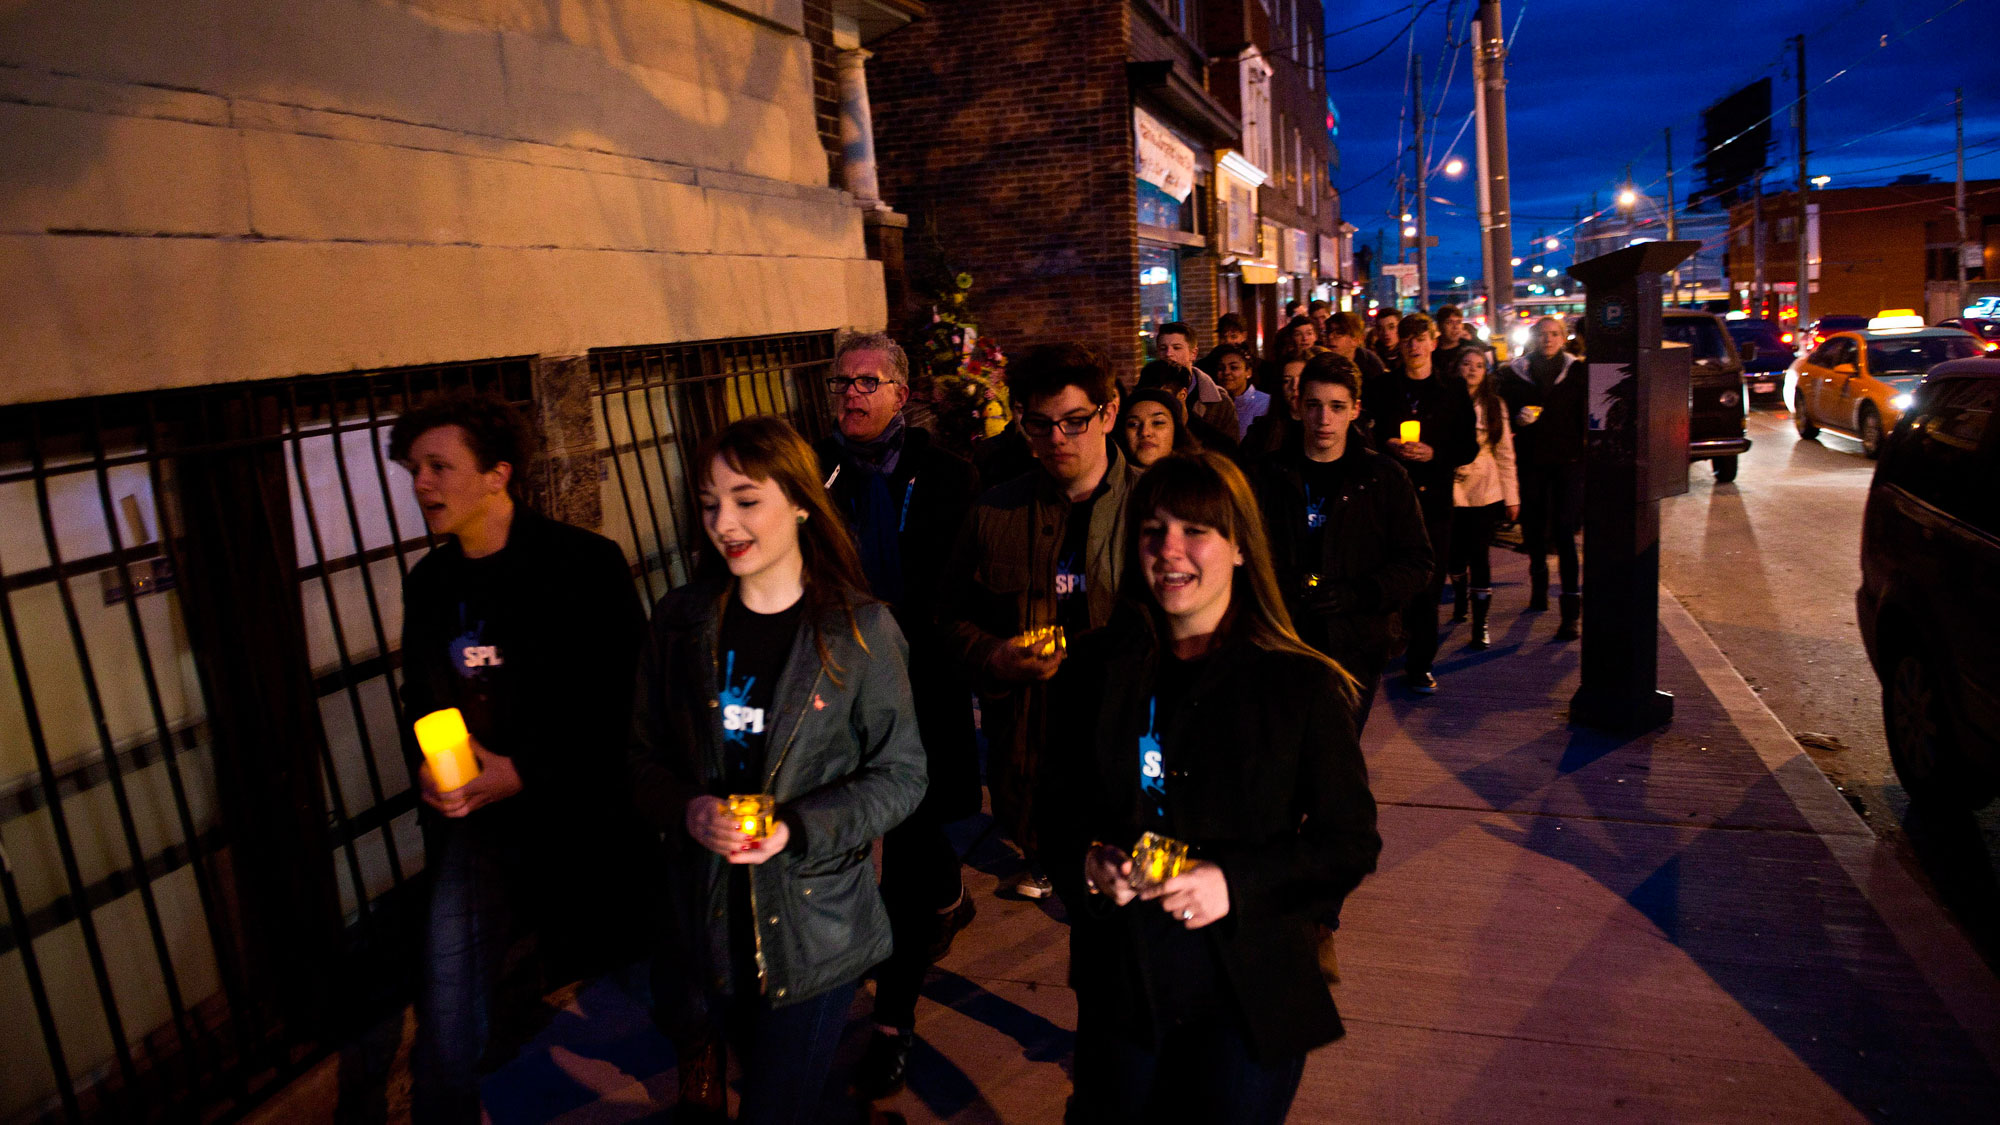 Members of SPLASH, the Etobicoke School of the Arts' show choir sing during a WWF-Canada lantern walk in Roncesvalles Village, celebrating Earth Hour, on March 23, 2013. THE CANADIAN PRESS/Galit Rodan